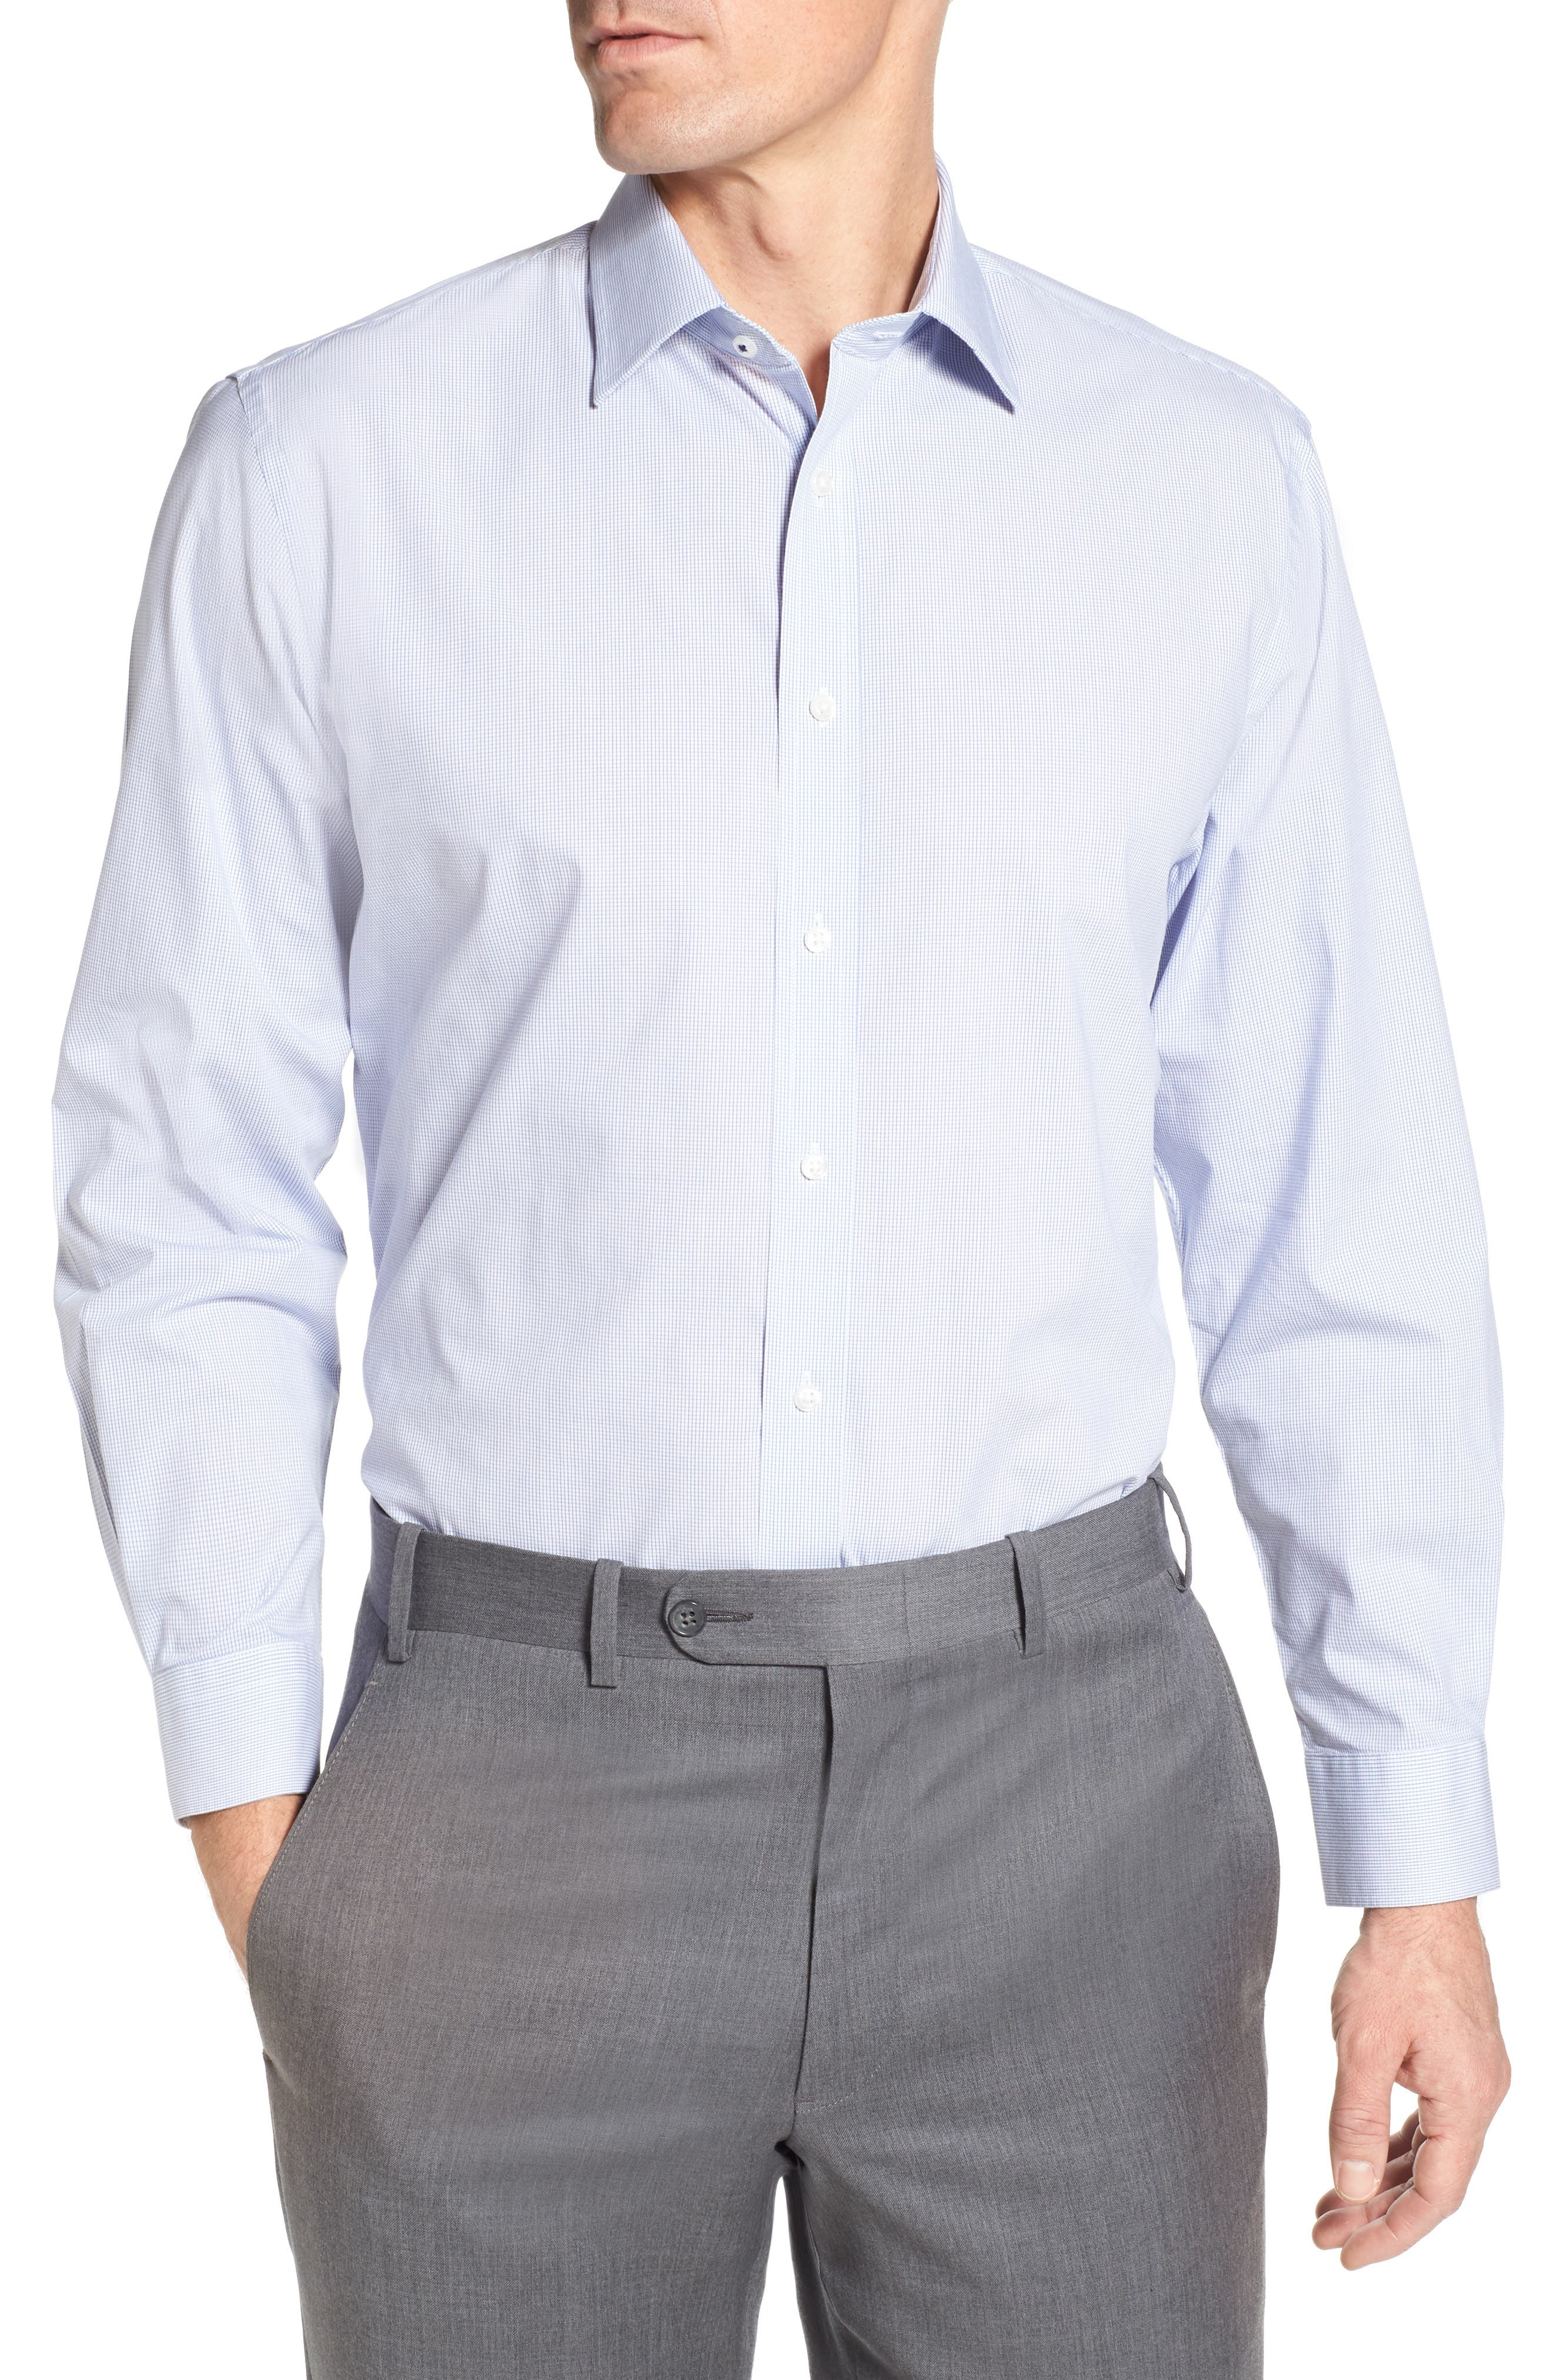 Alternate Image 1 Selected - Nordstrom Men's Shop Tech-Smart Traditional Fit Stretch Check Dress Shirt